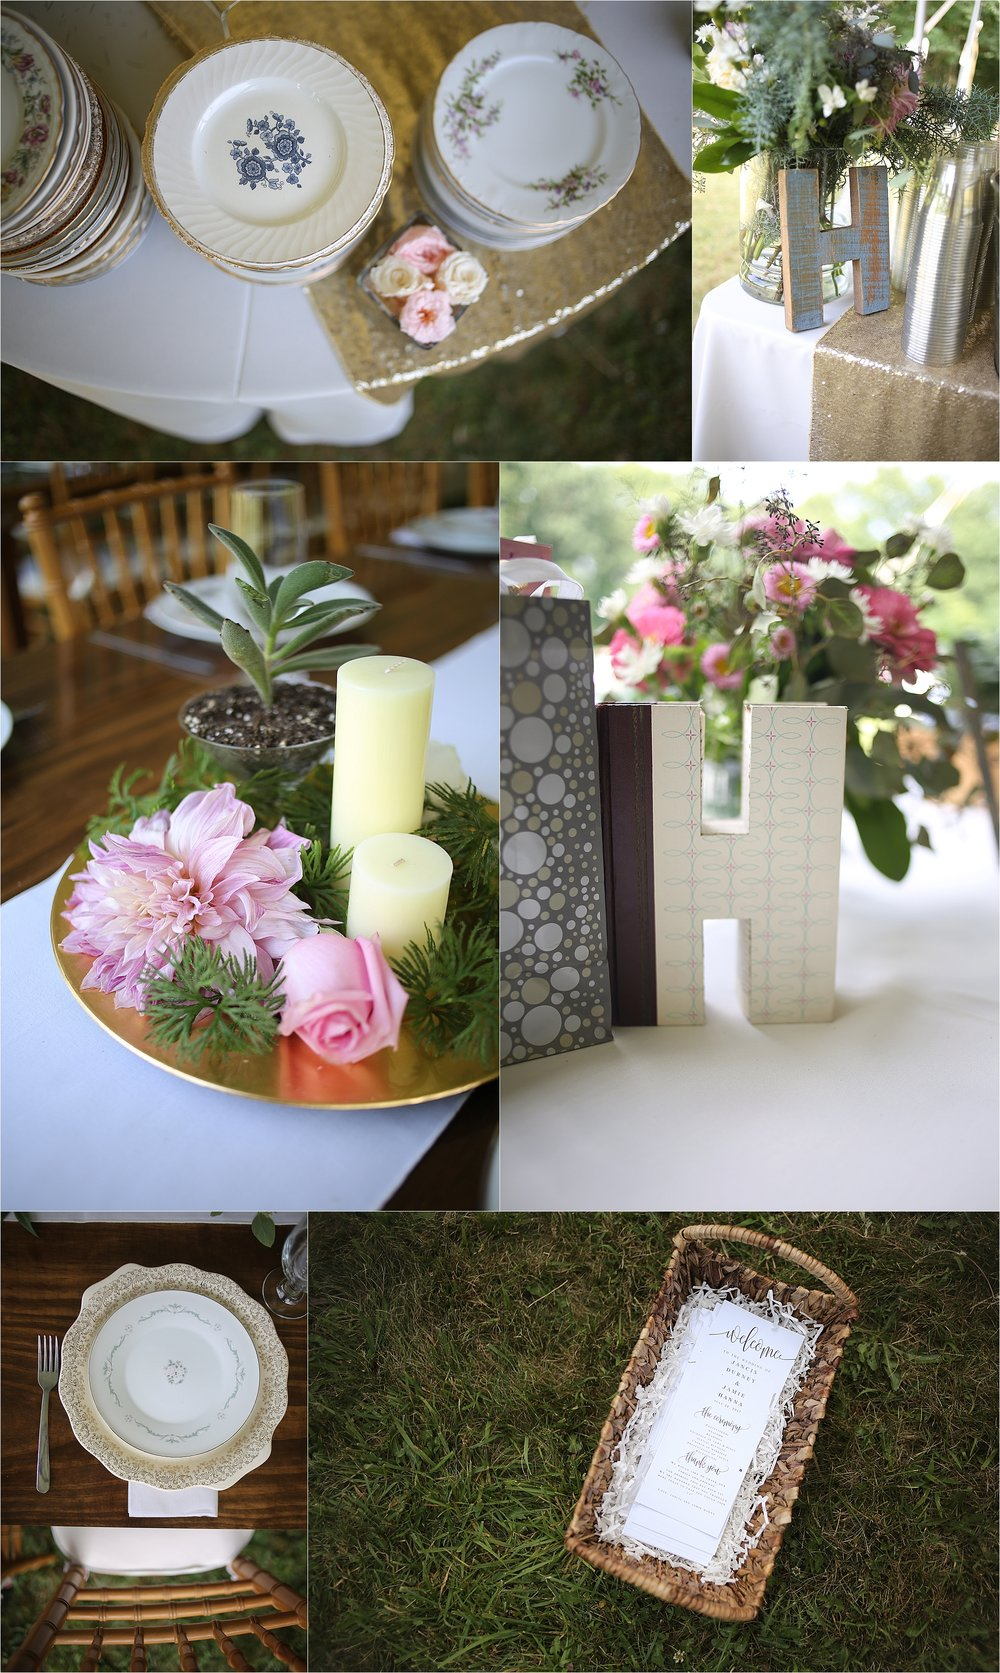 Rustic Wedding Decor Mix and Match China Glitter and Sparkles Flat Top Lake West Virginia Wedding Photography